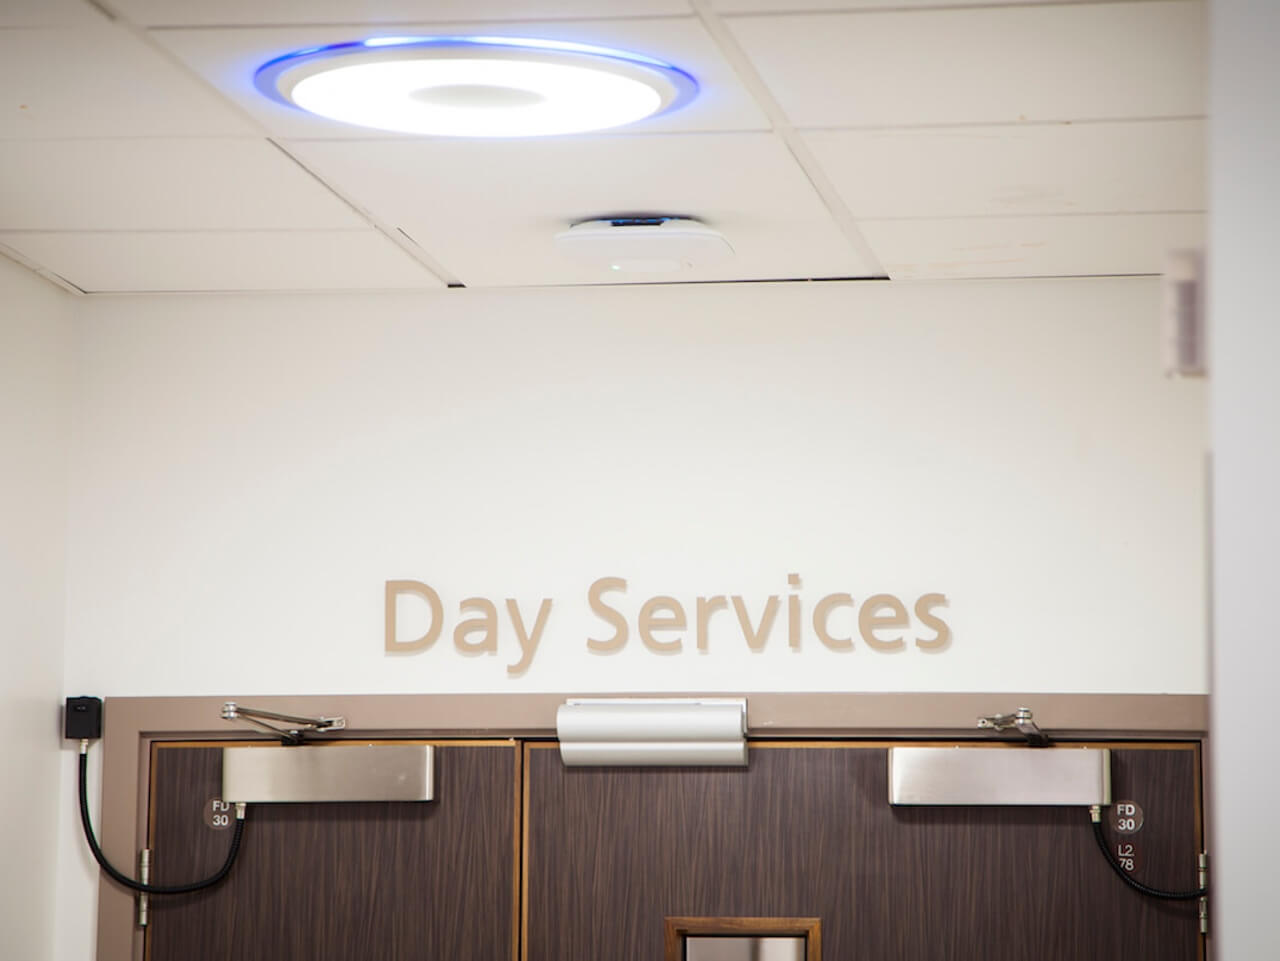 Wayfinding and internal signage with wall mounted lettering